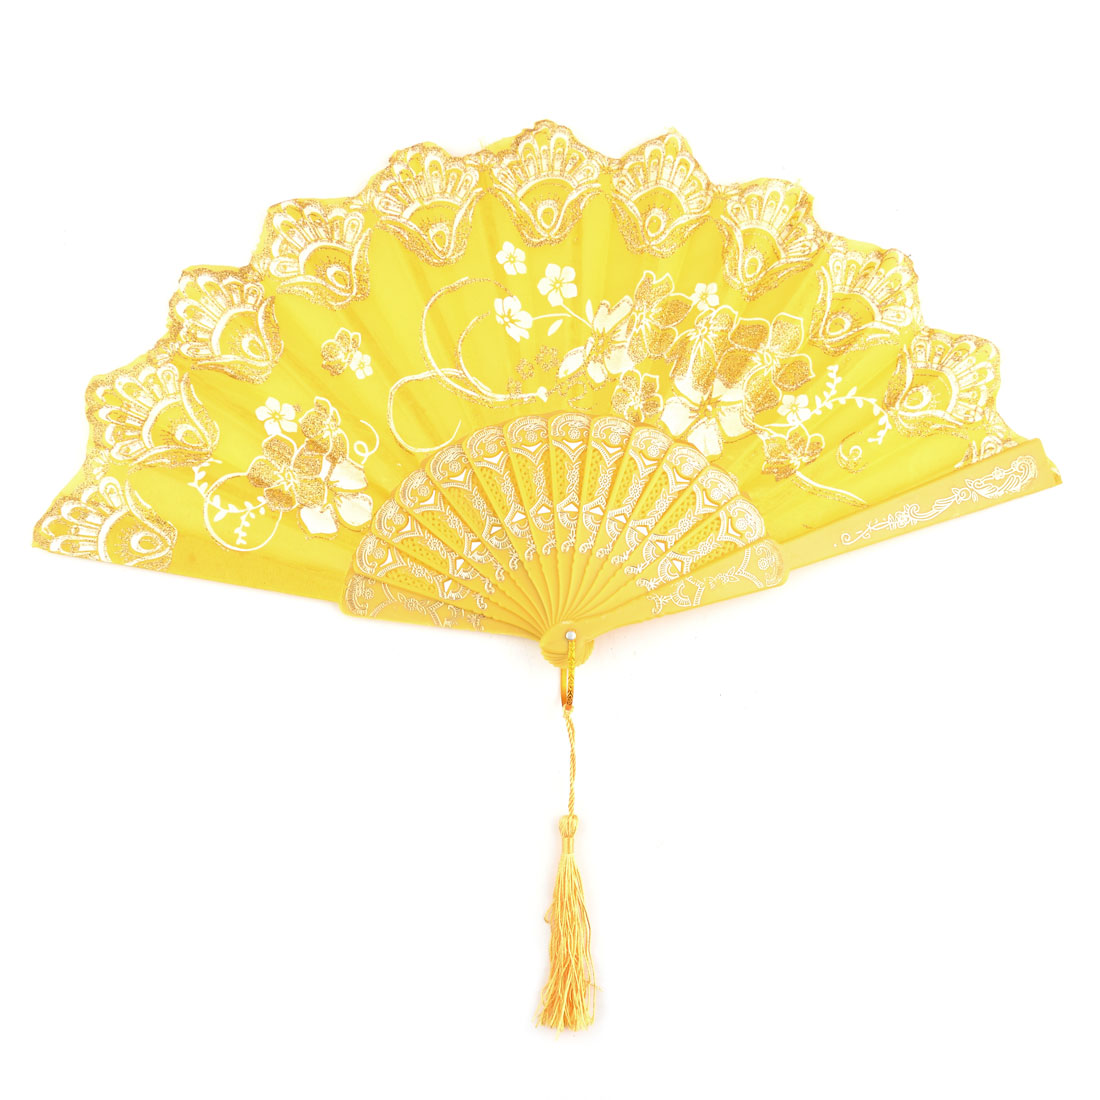 Household Plastic Cherryblossom Pattern Folding Cooling Dancing Hand Fan Yellow